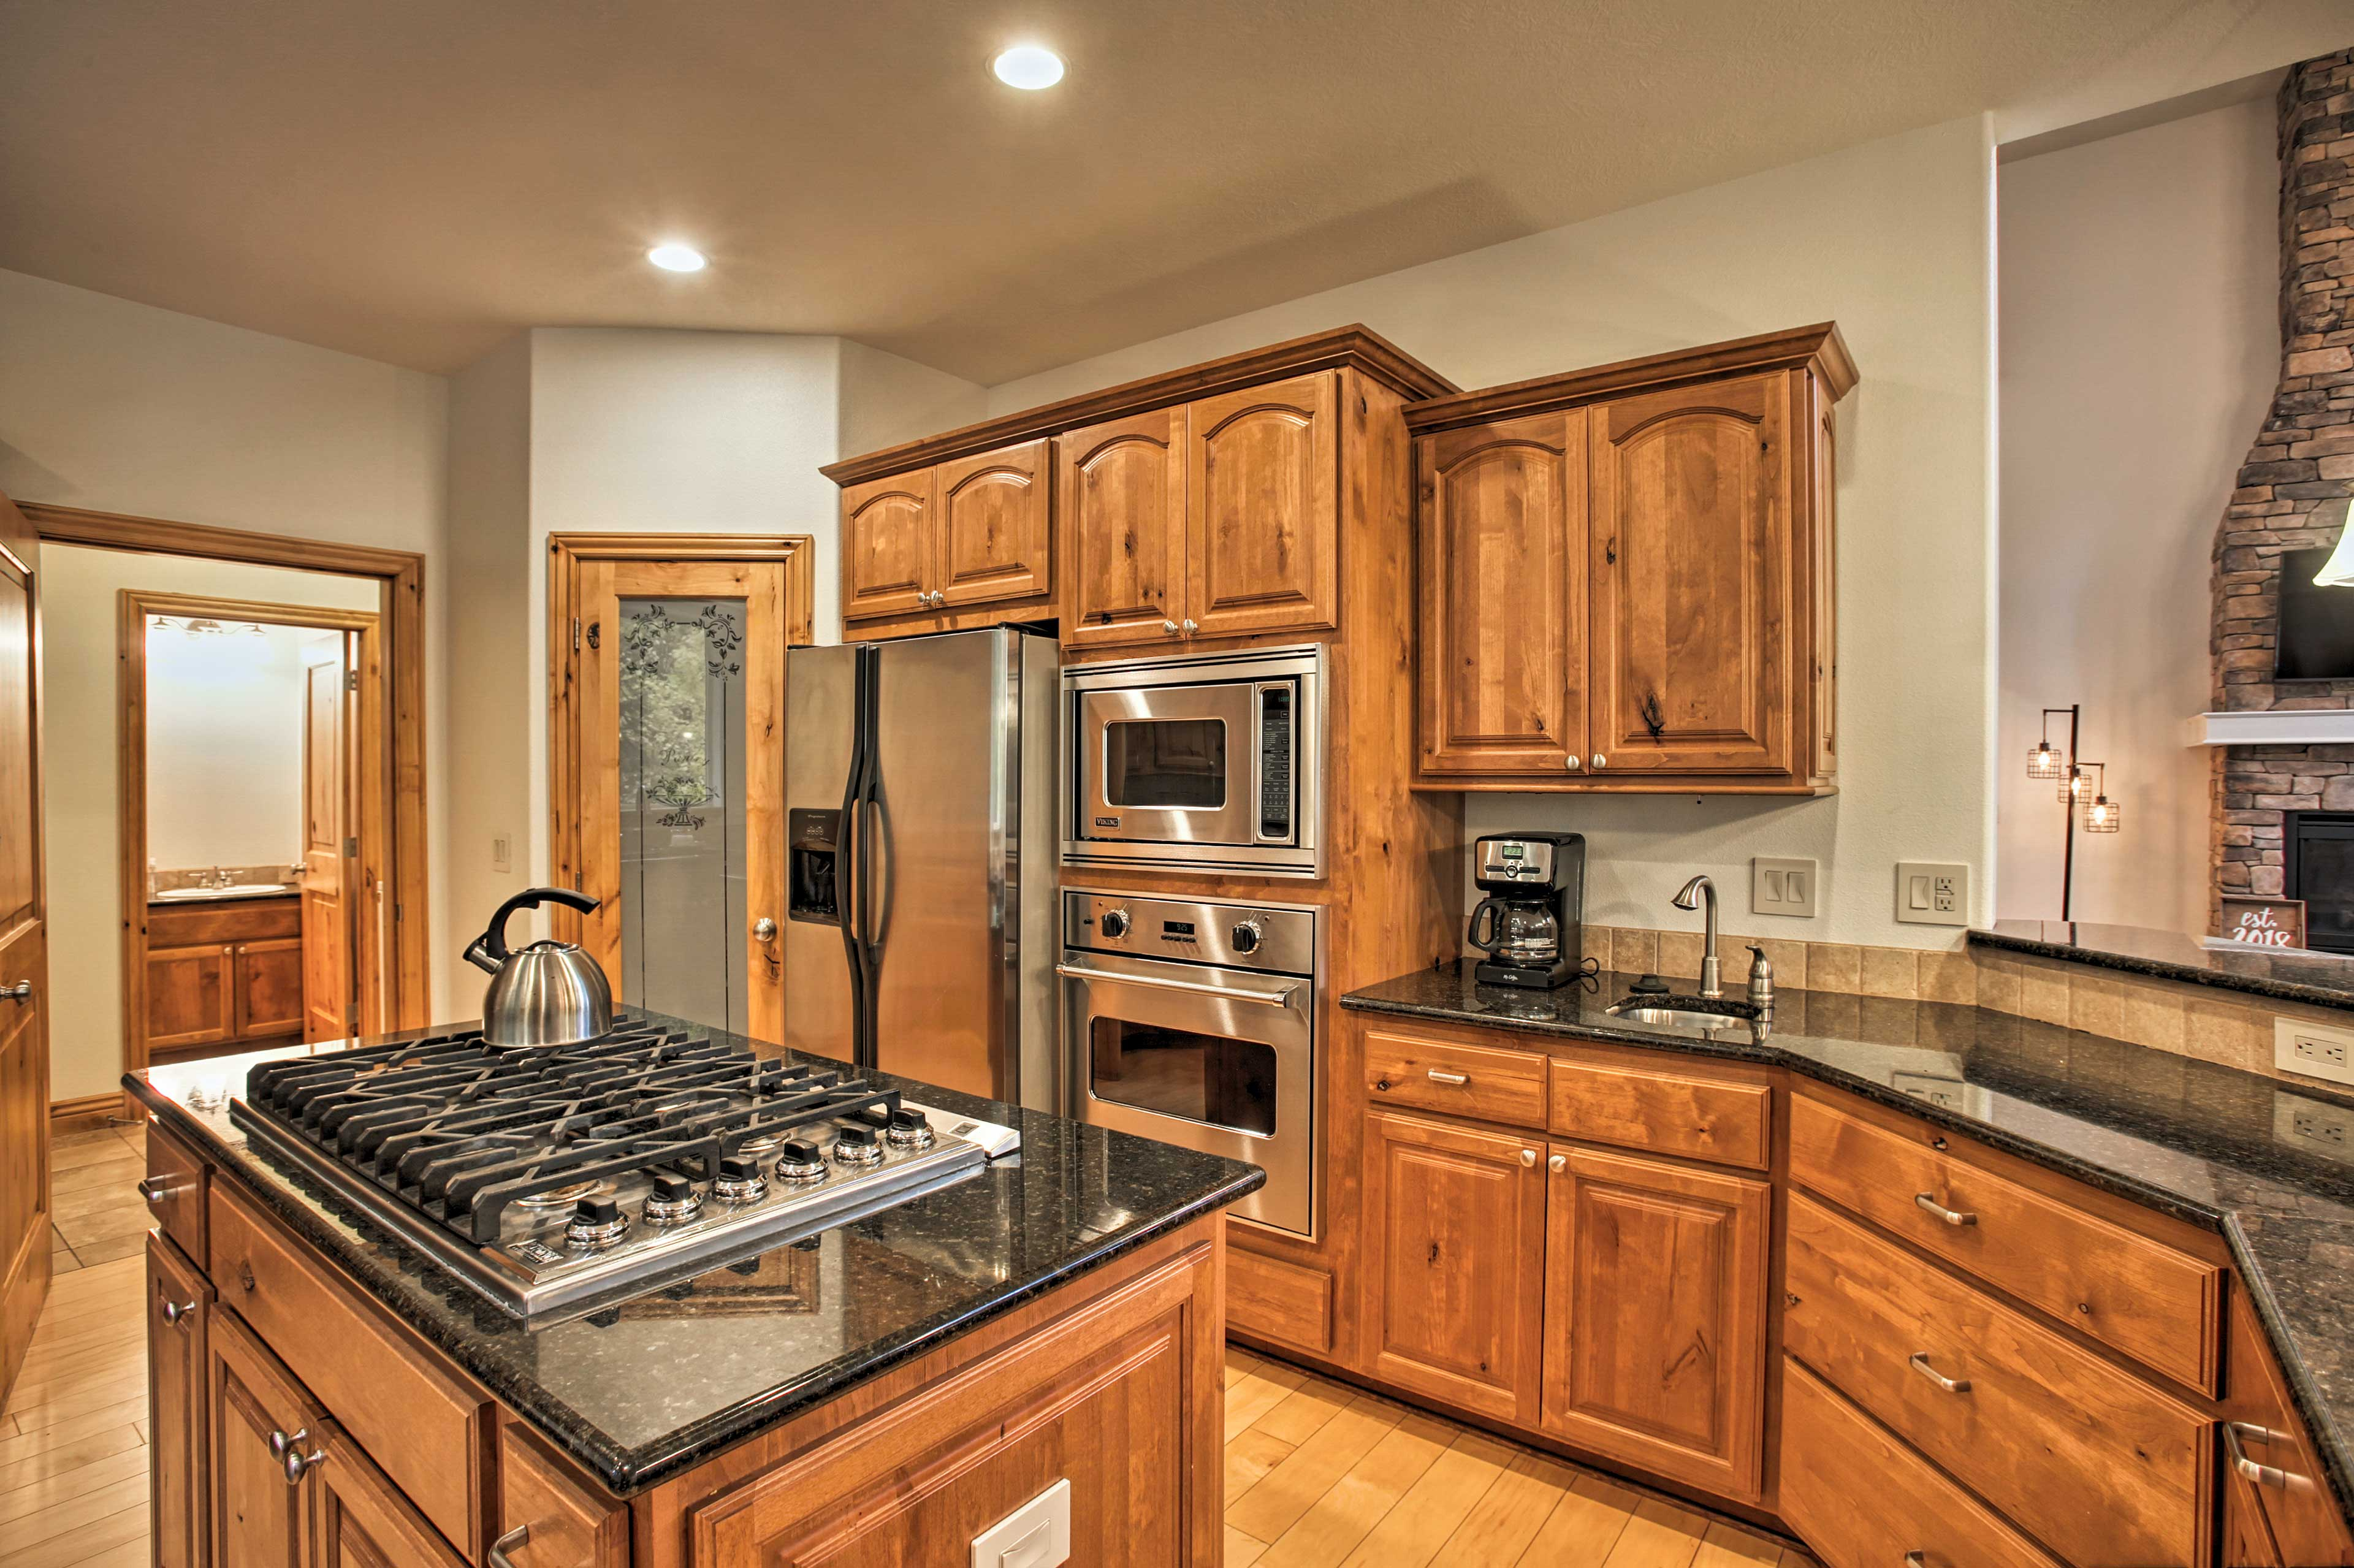 Stainless steel appliances & gorgeous wood cabinets enhance the stylish kitchen.